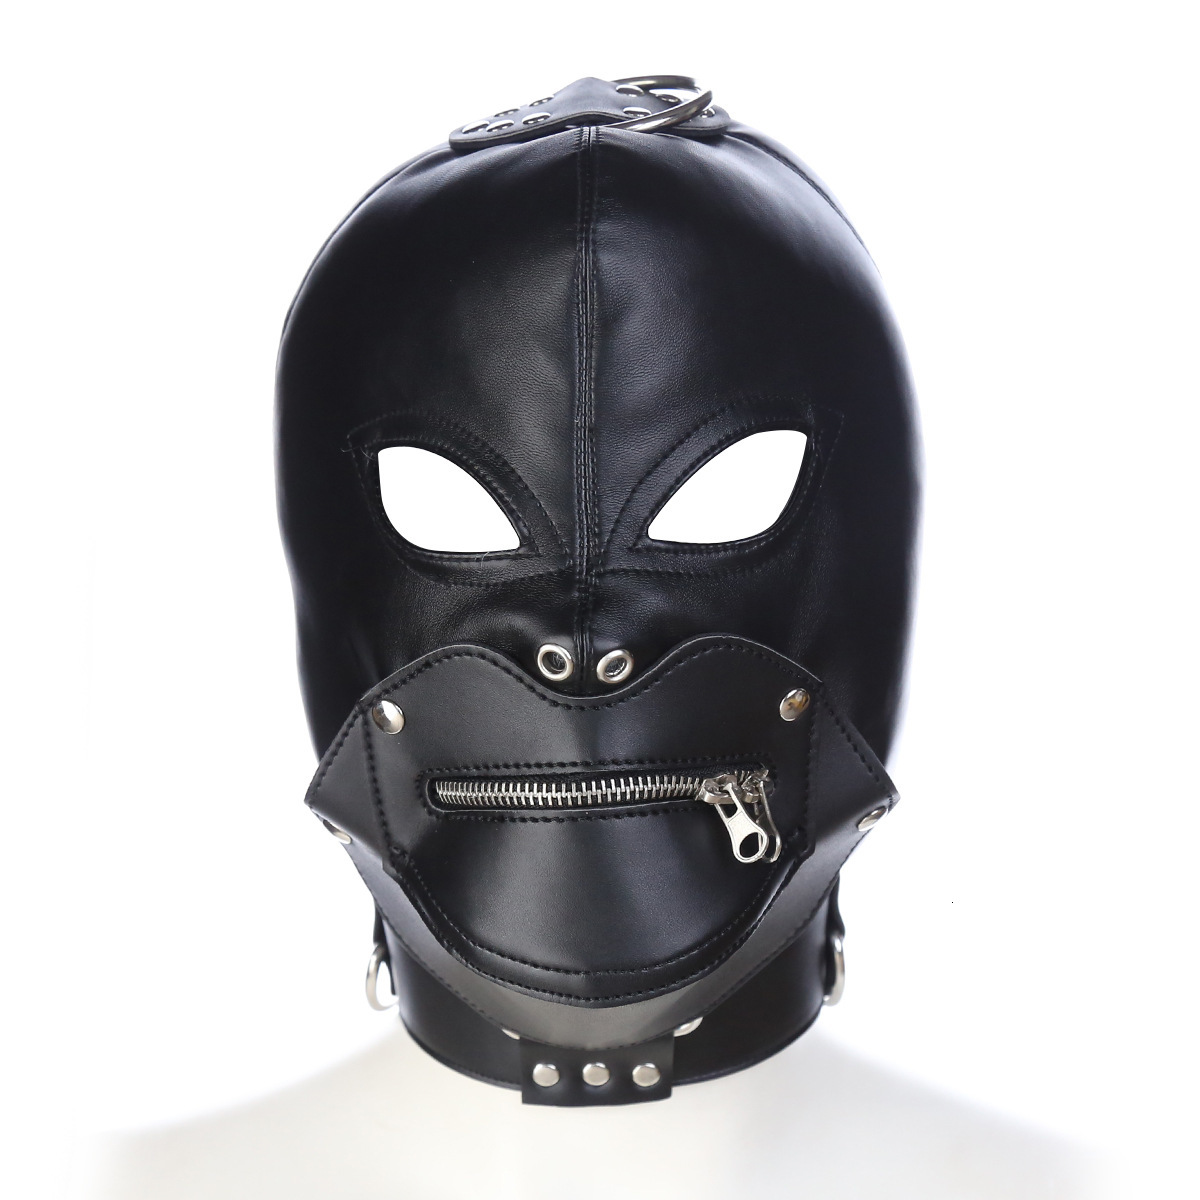 PU Adult Games Headhood Sex Products Sex Head Hoods Head Masks Adult Toys For Couple And Lover